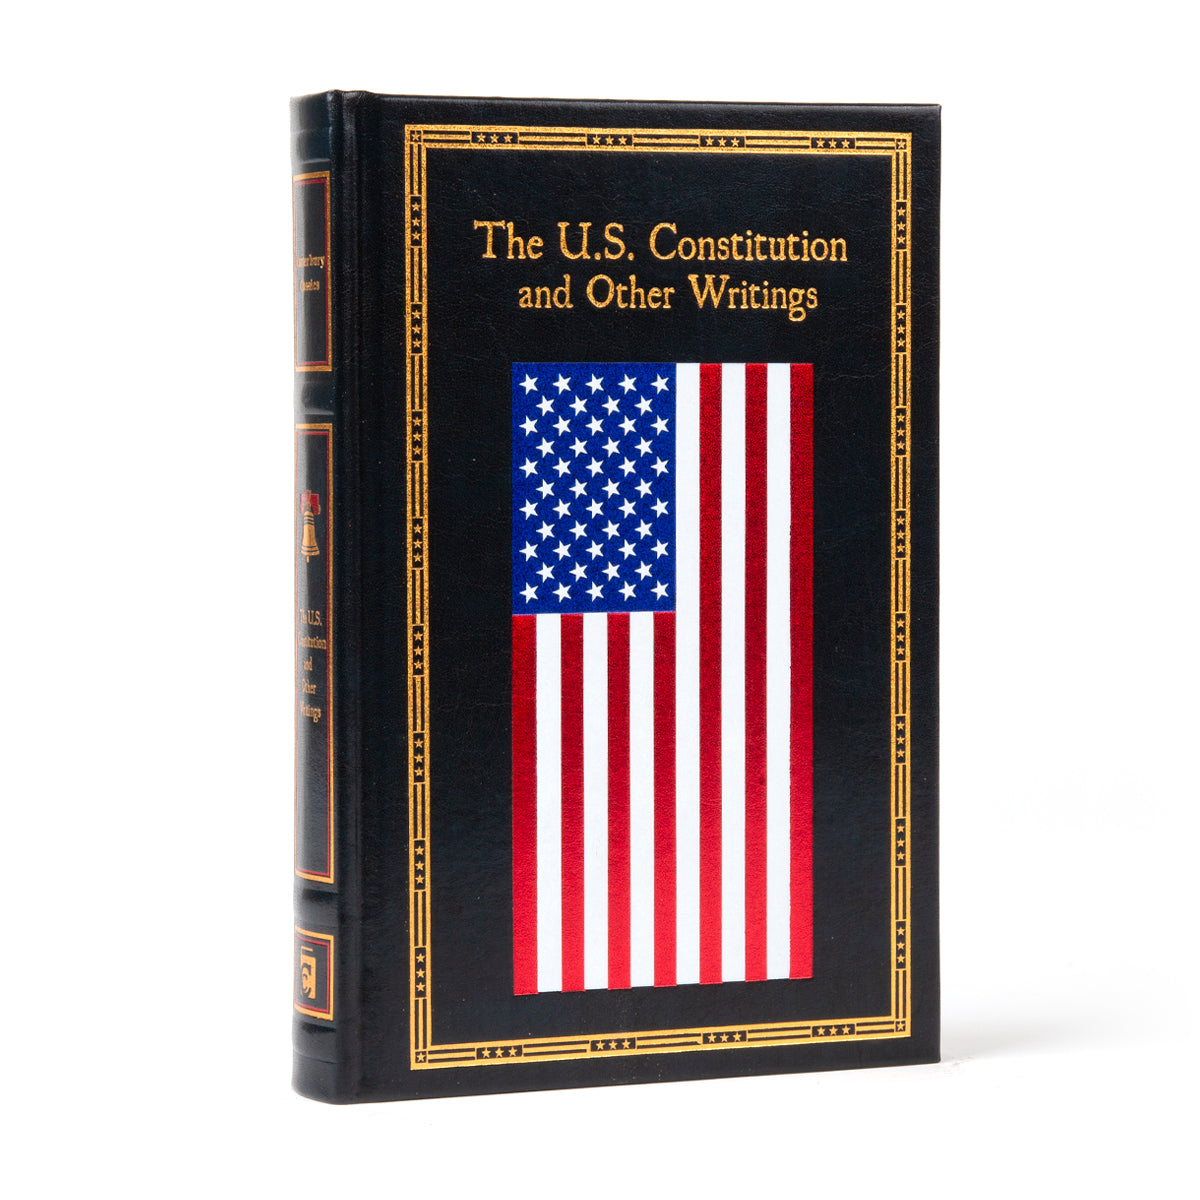 The U.S. Constitution and Other Writings by Canterbury Classics